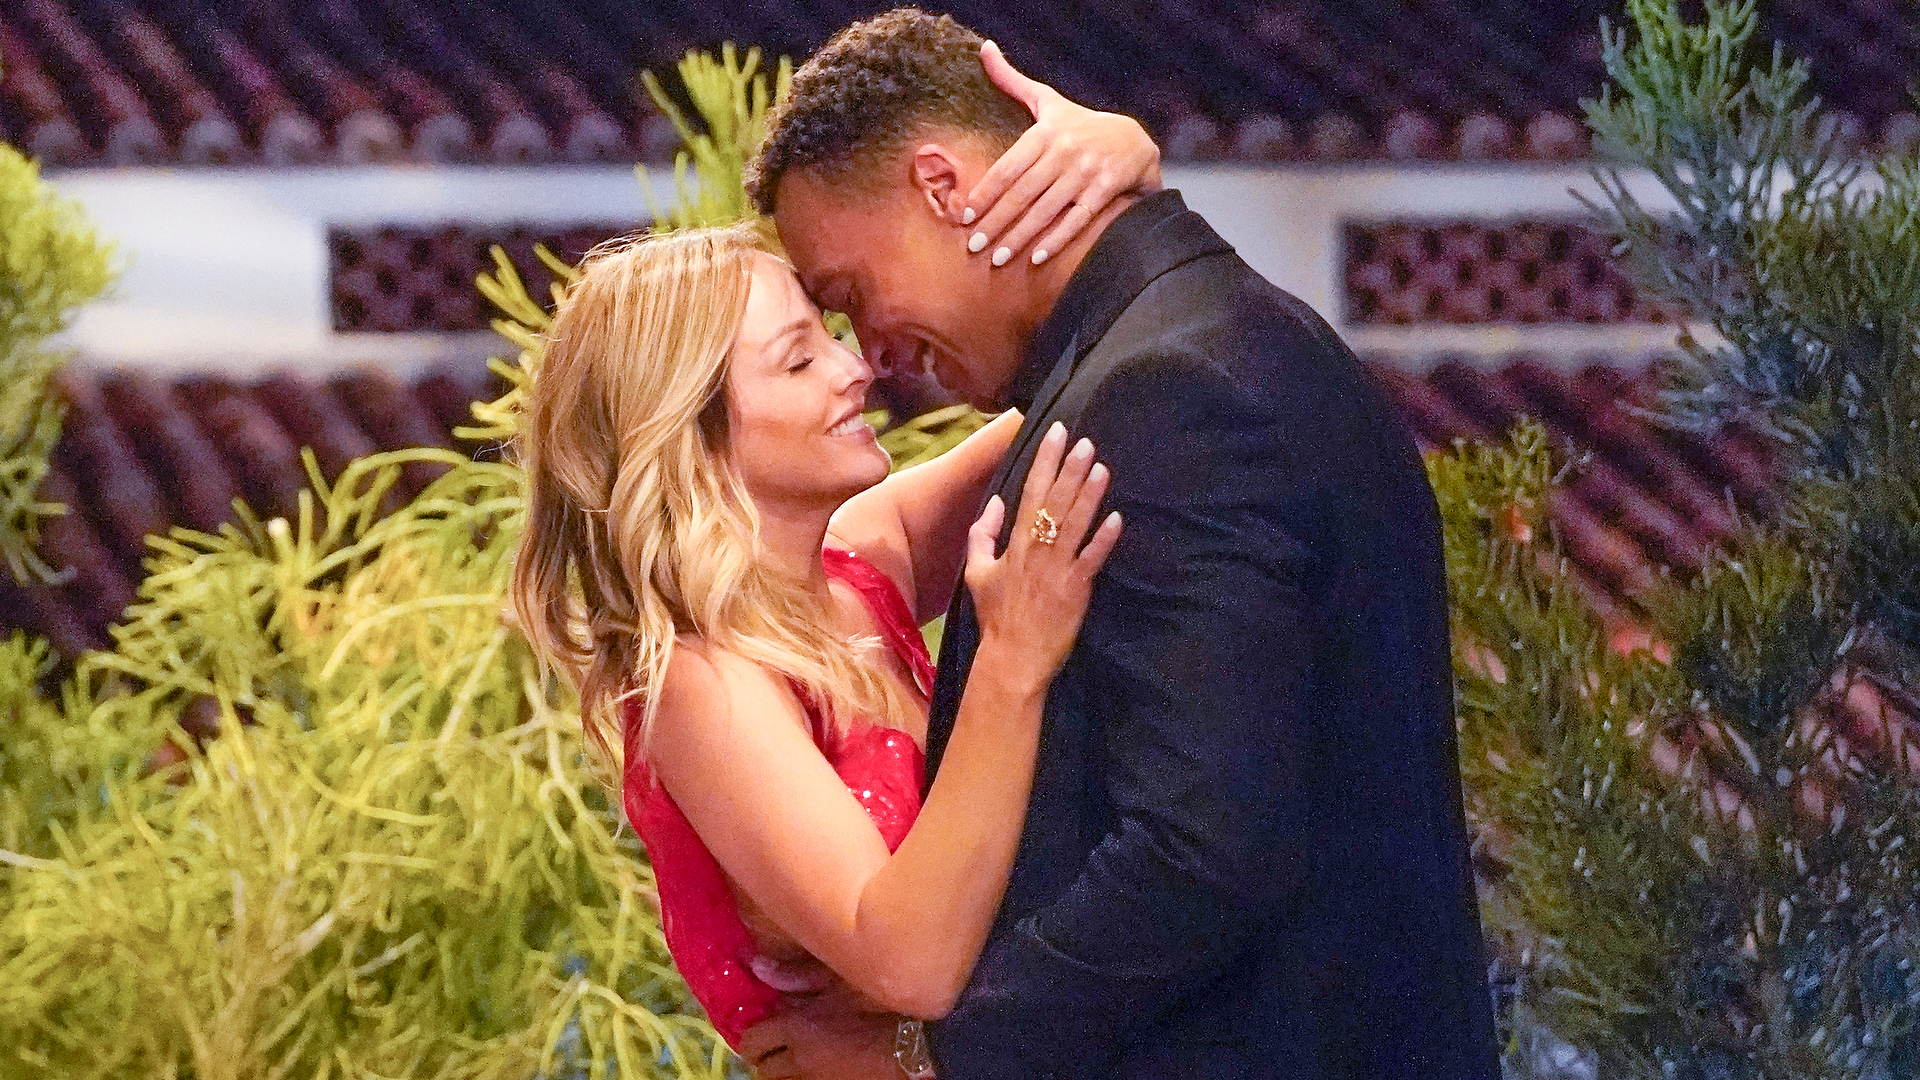 Clare Crawley & Dale Moss On Whirlwind Romance After Engagement